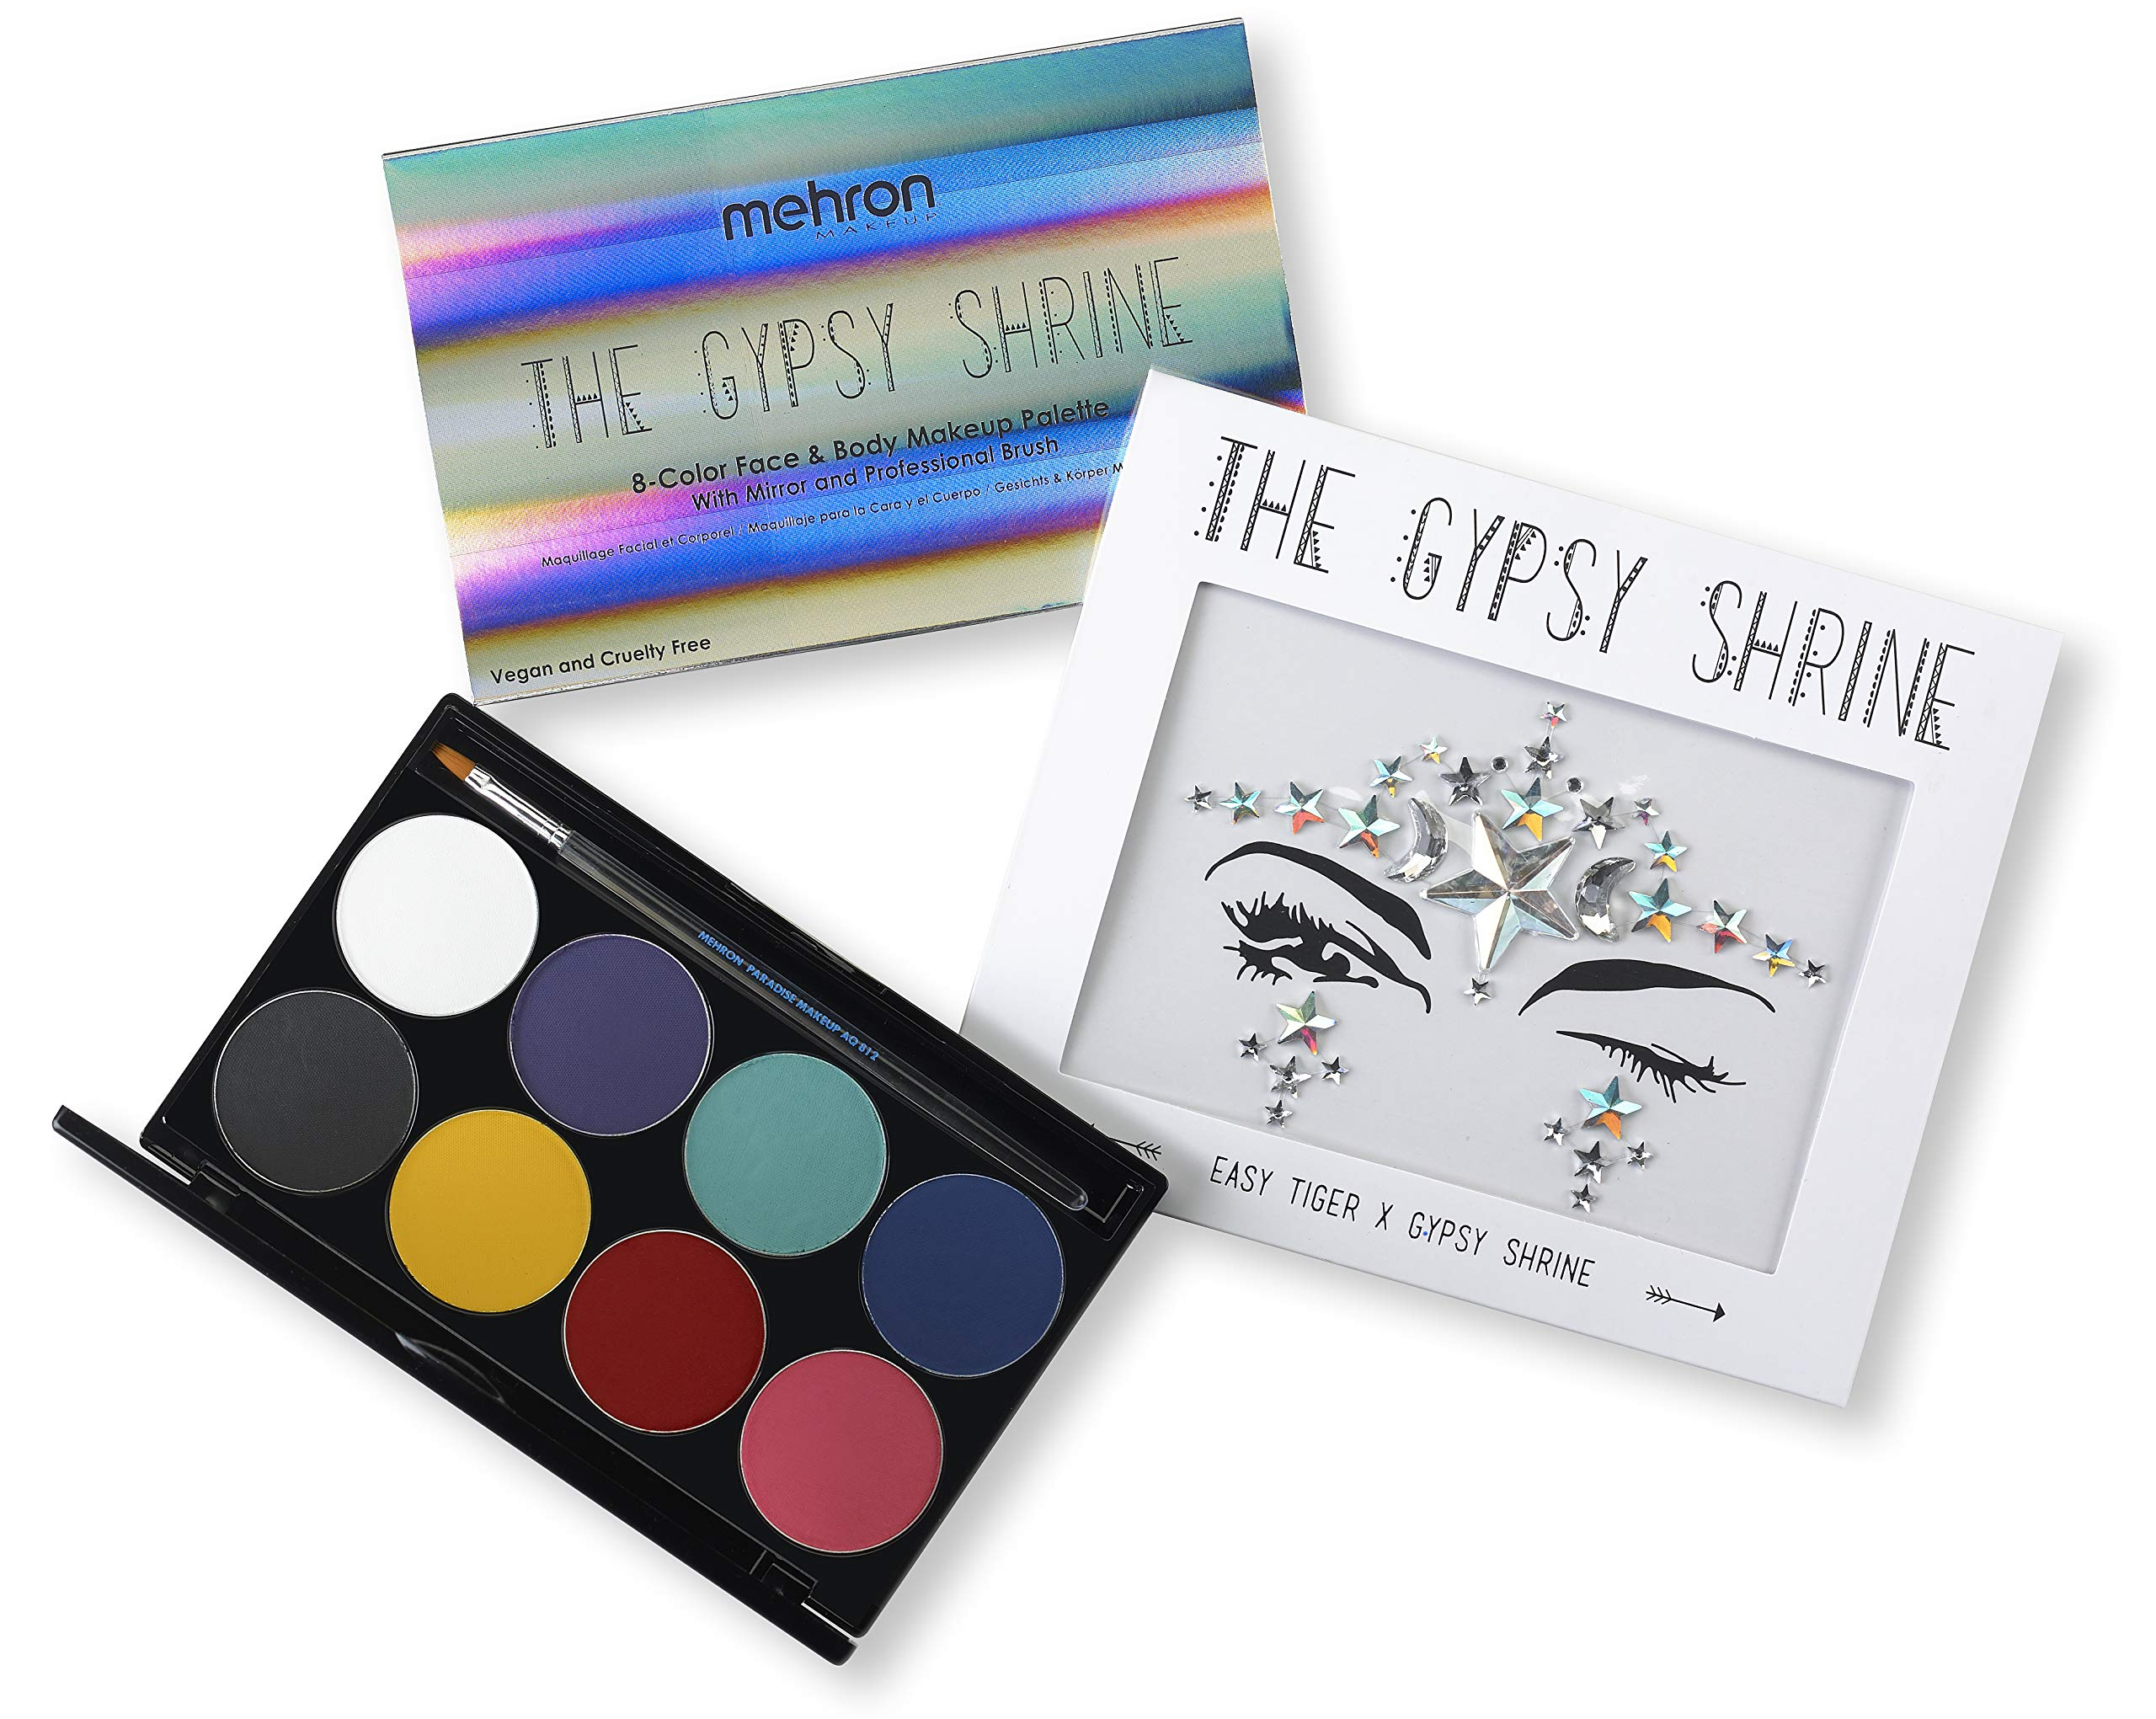 Mehron Makeup Face & Body Makeup Palette with The Gypsy Shrine Jewel Collection (Easy Tiger) by Mehron